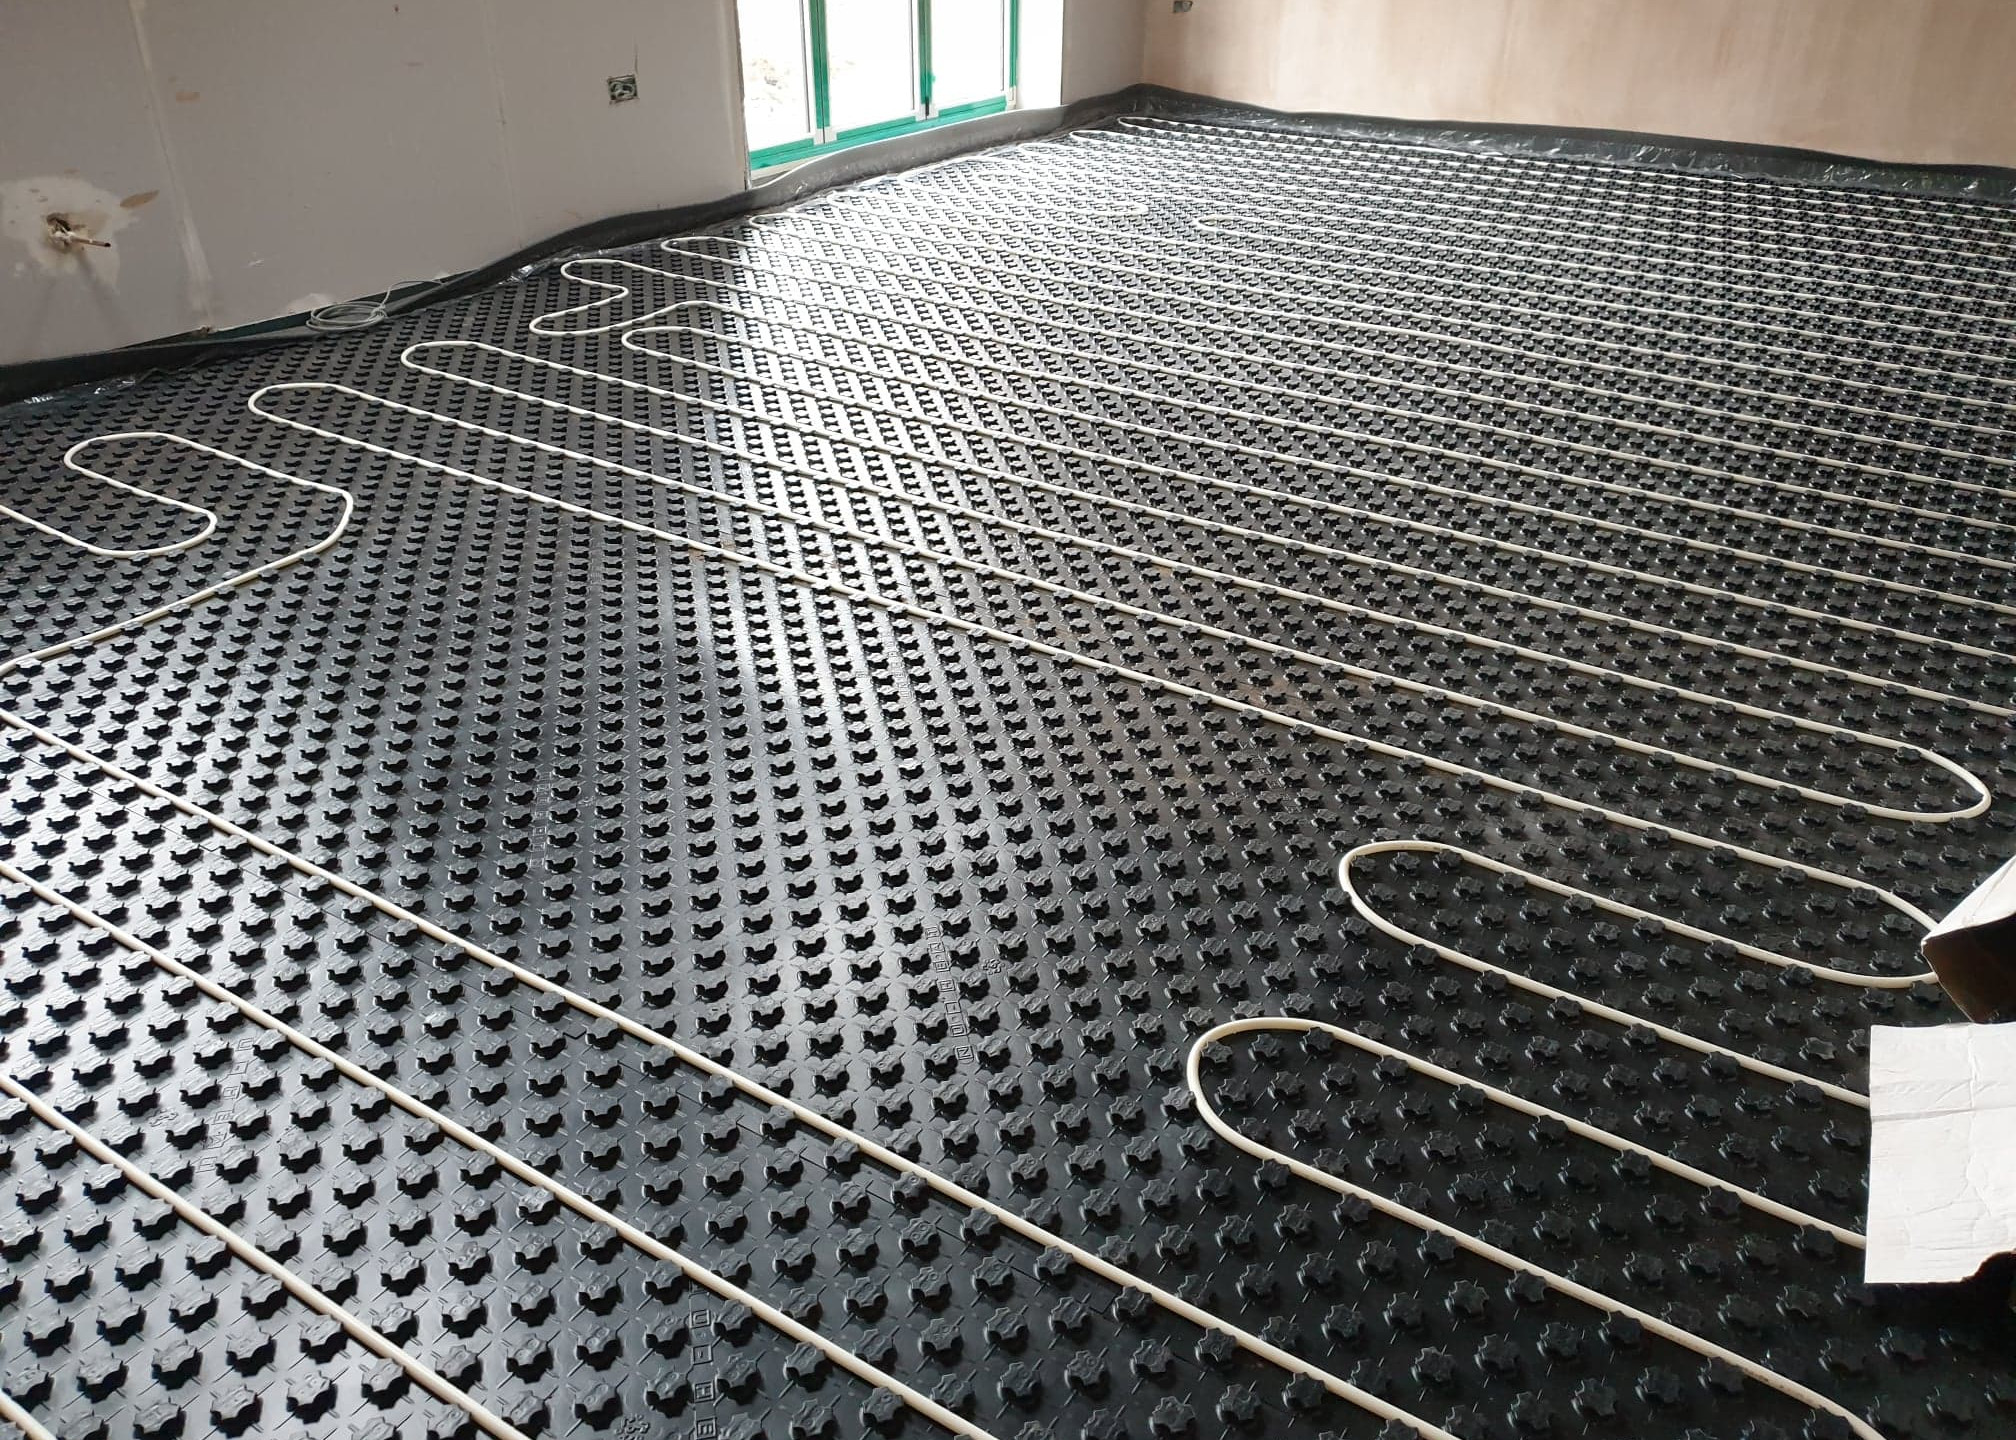 More underfloor heating in new build Shropshire home